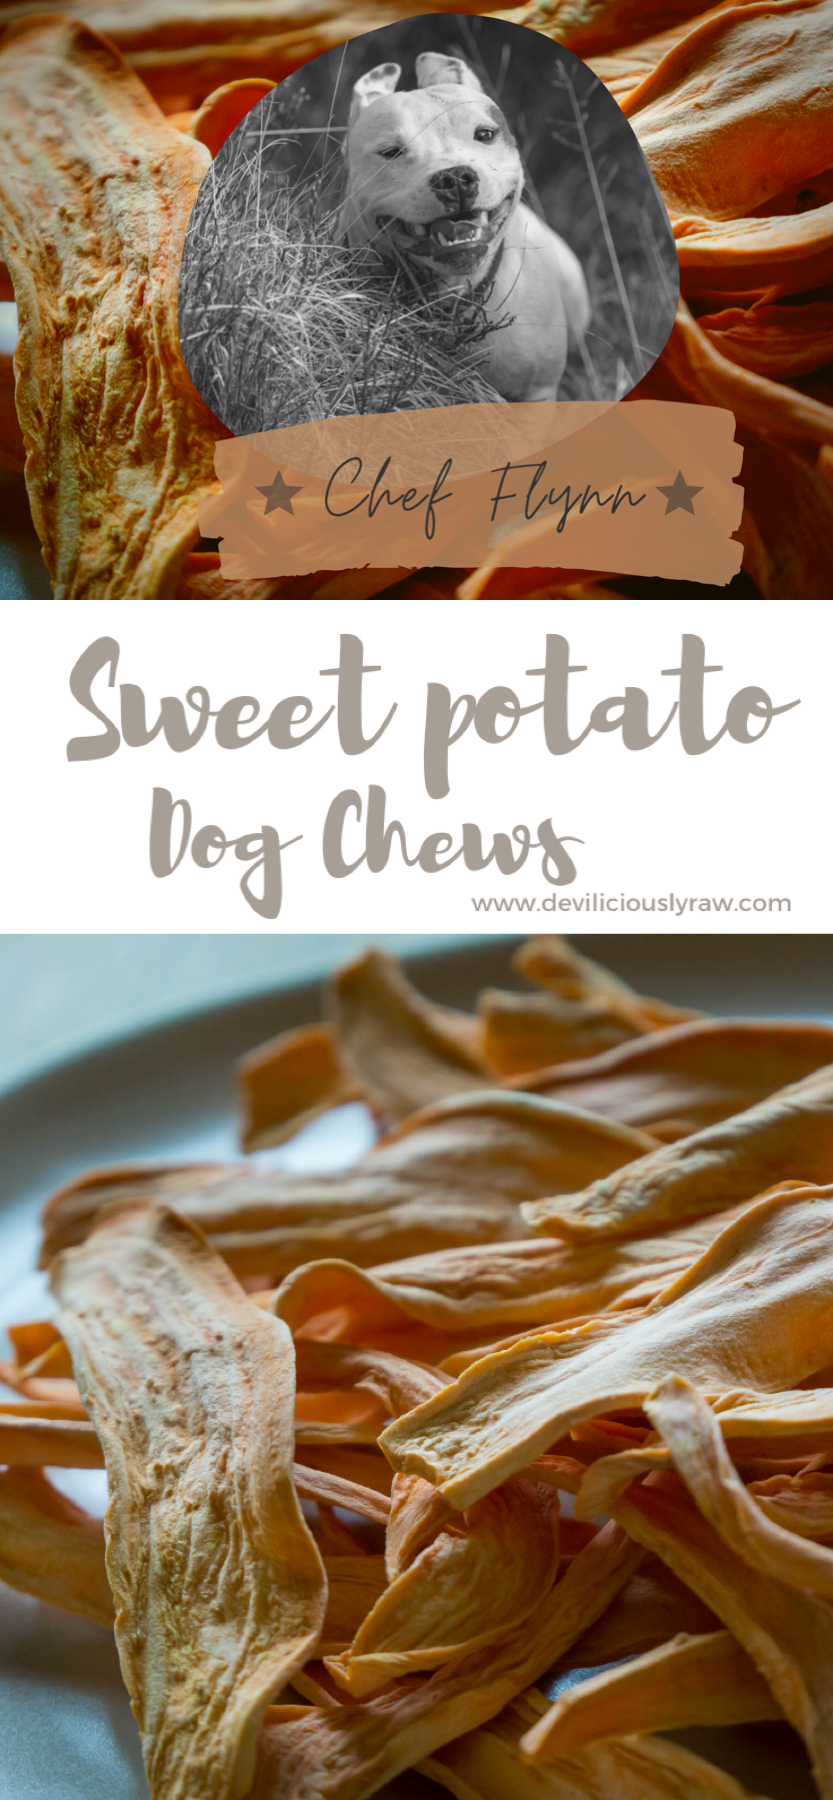 Sweet Potato Dog Chews